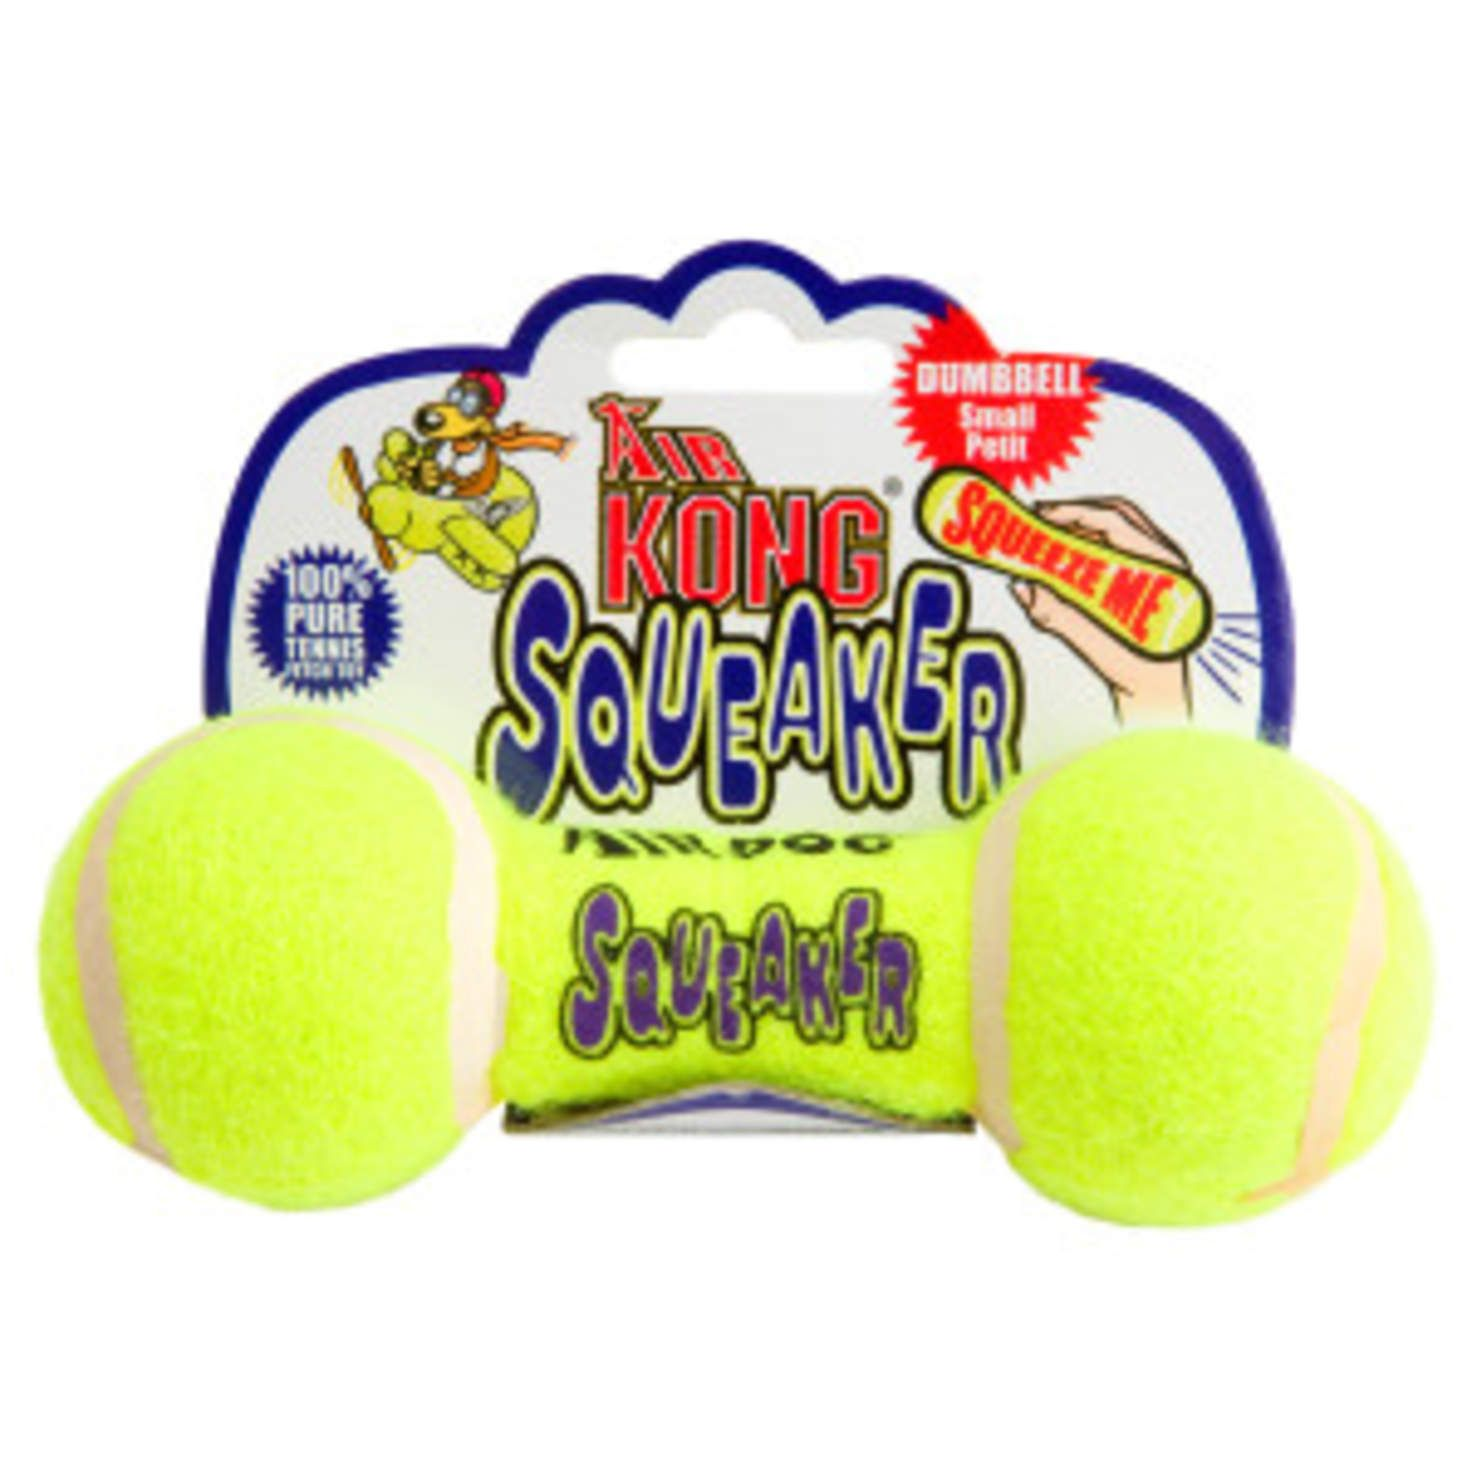 Dog toys images  KONG Air Dog Dumbbell Squeaker Dog Toy  Itus a Dogus Life  Pinterest